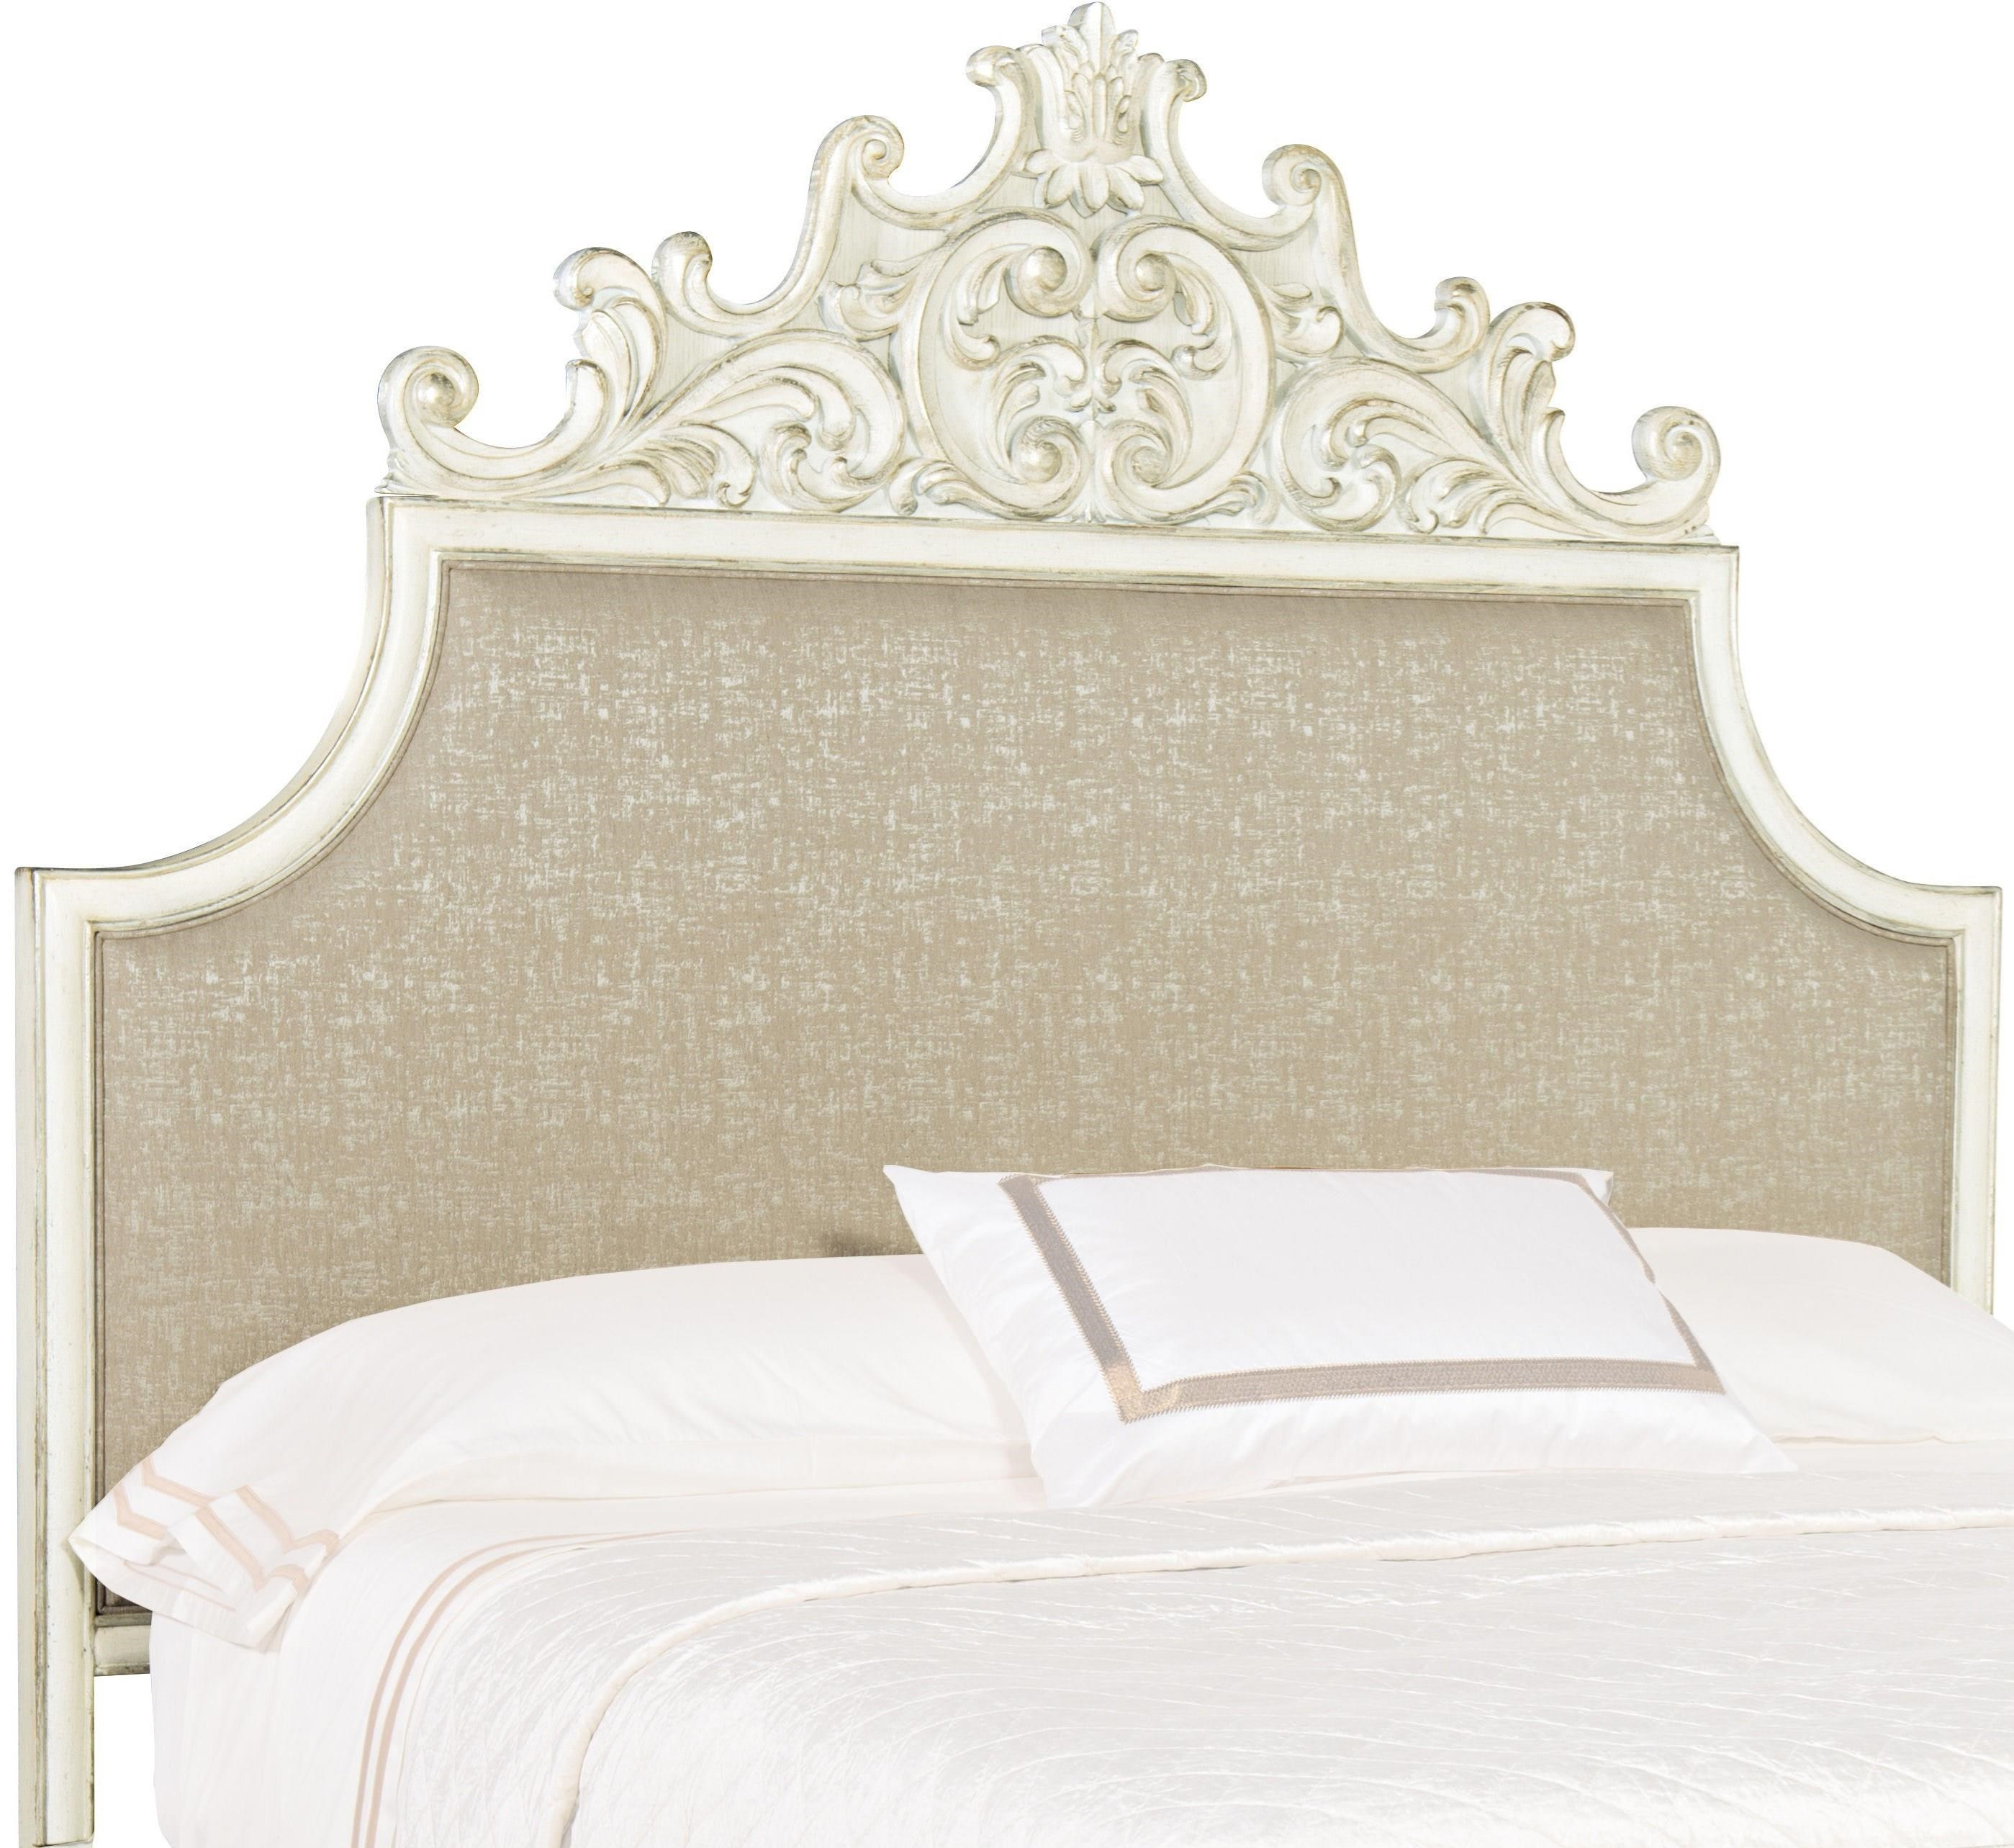 Sanctuary Anastasie Queen Upholstered Headboard by Hooker Furniture at Zak's Home